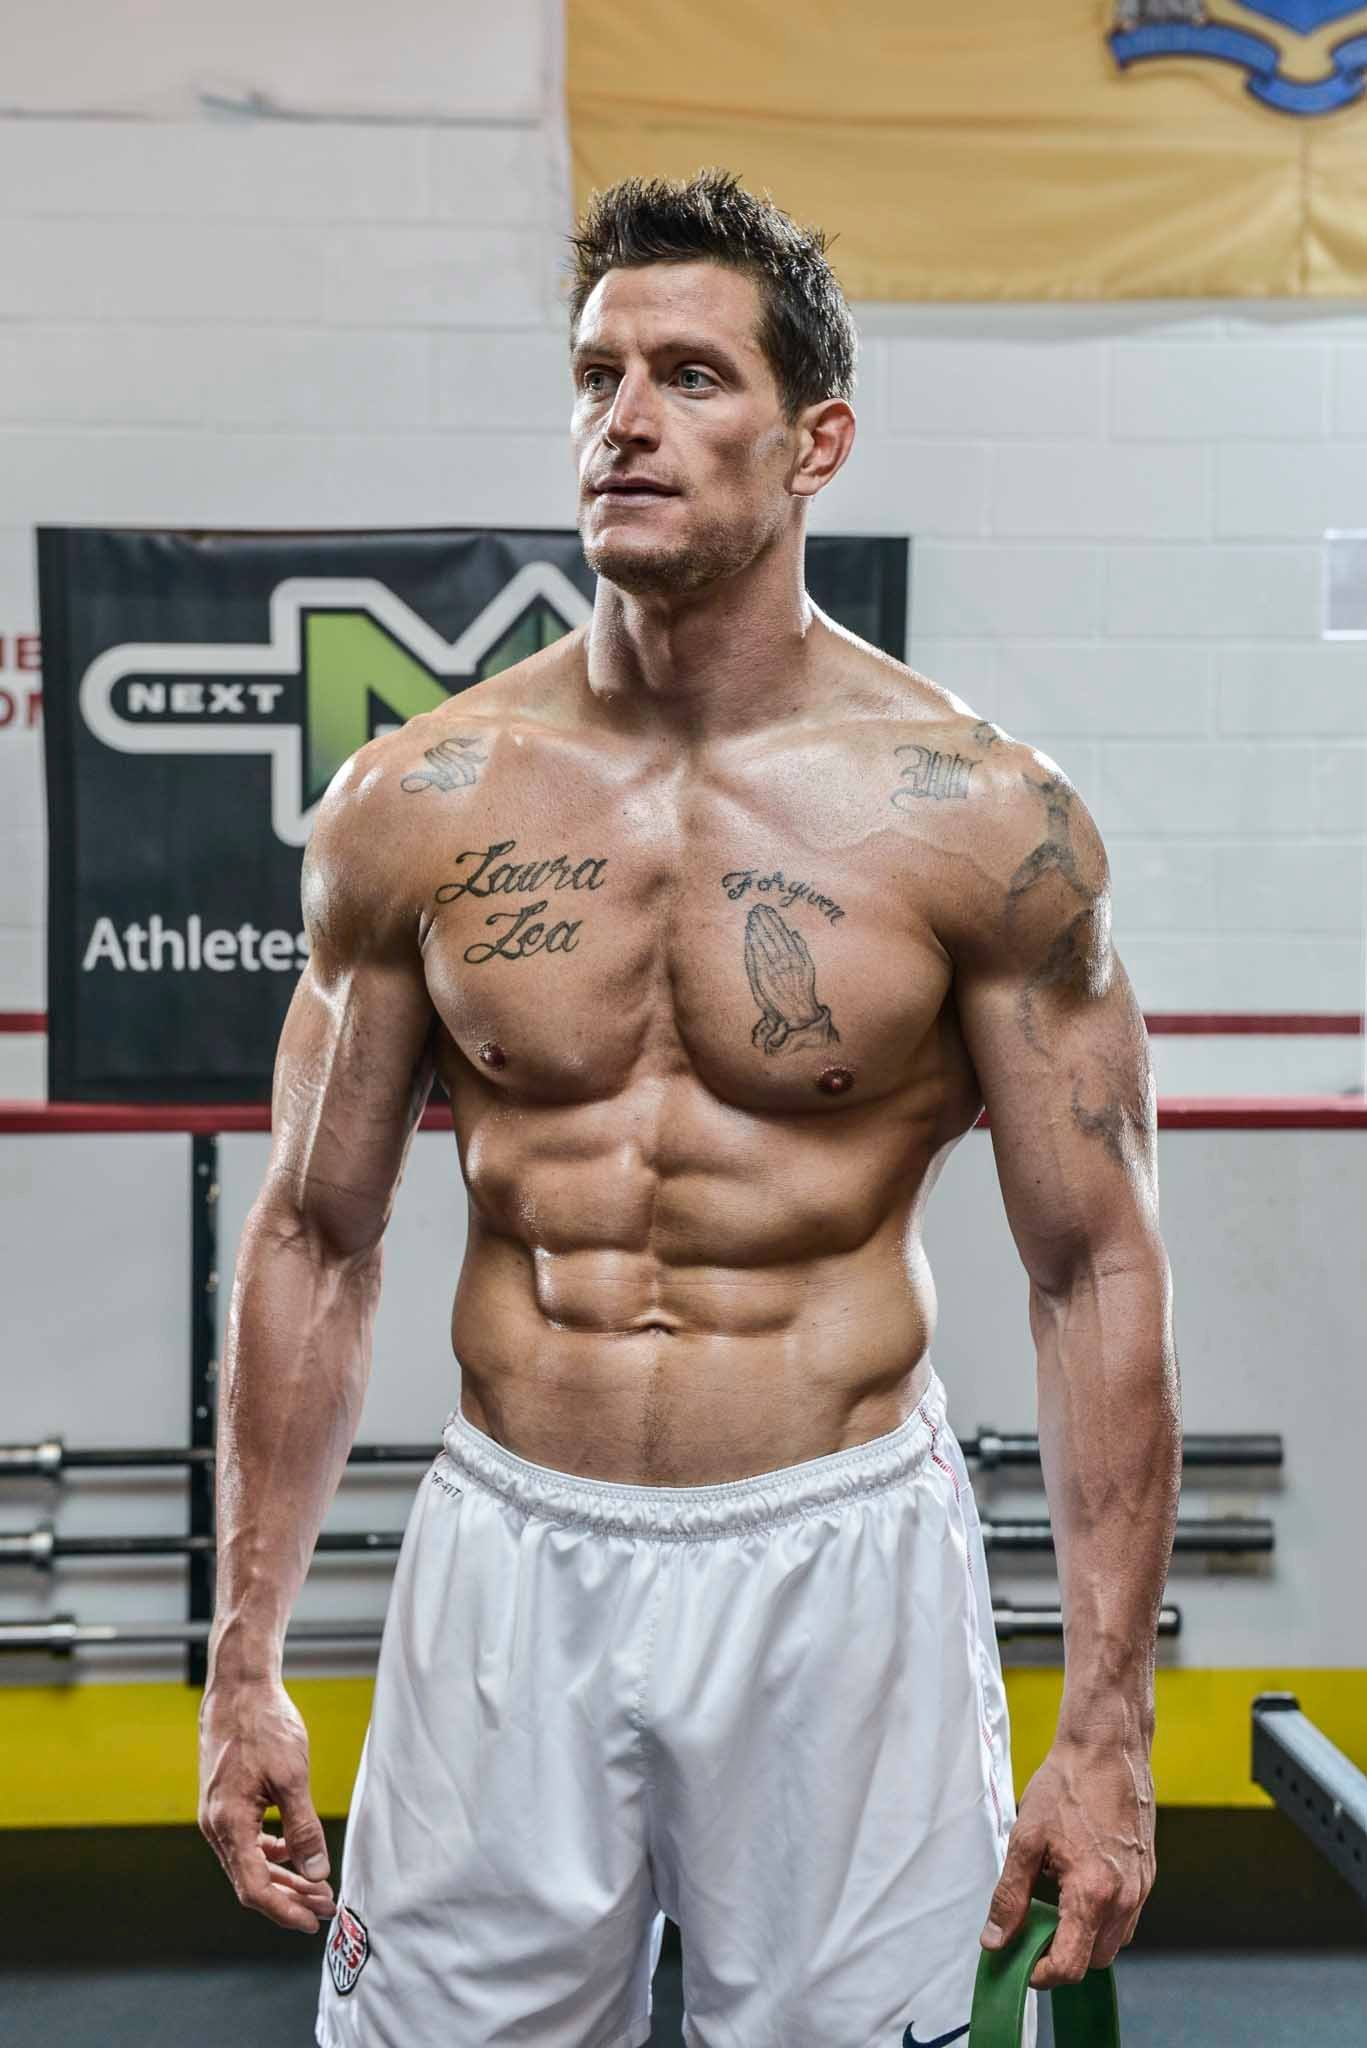 Get To Know Nutropia, like New York Giants player Steve Weatherford